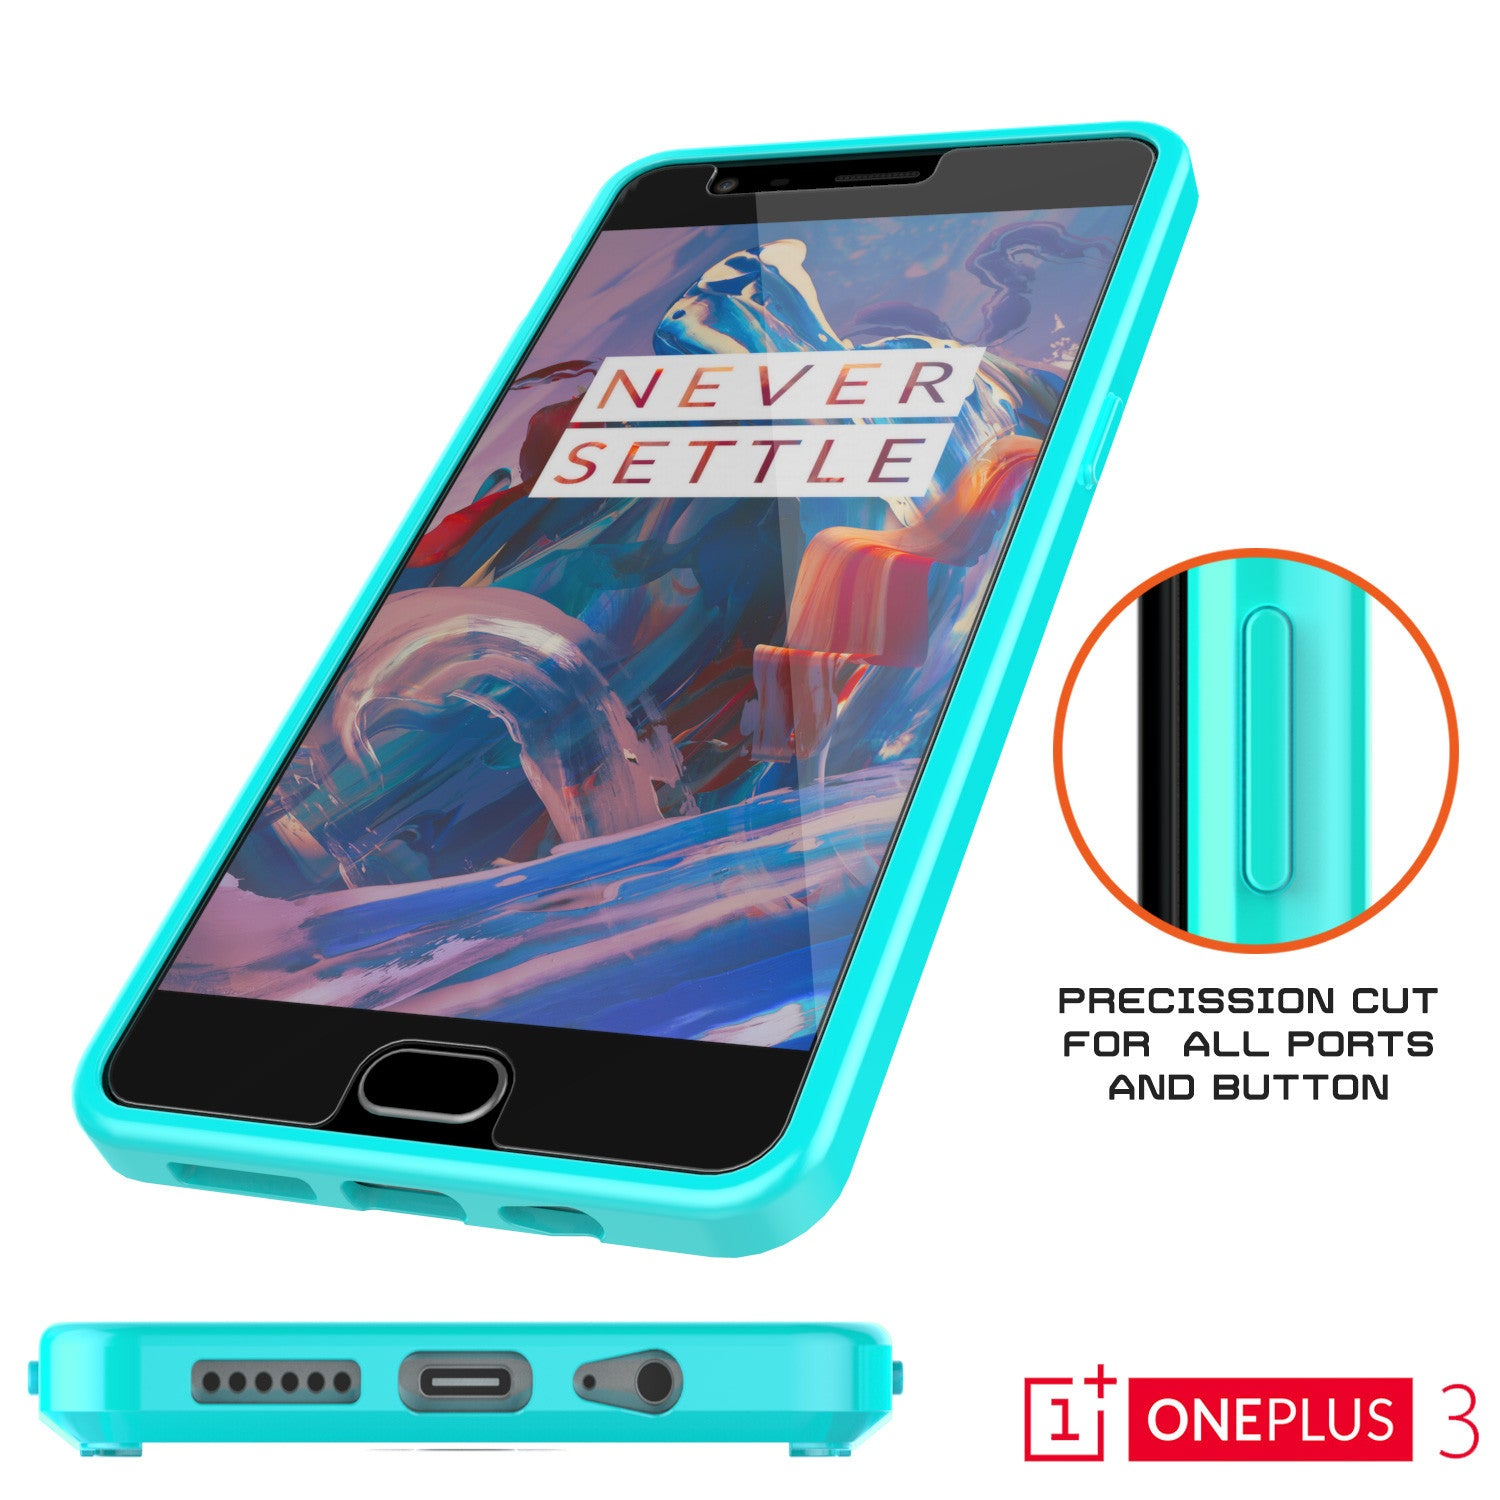 OnePlus 3 Case Punkcase® LUCID 2.0 Teal Series w/ SHIELD GLASS Lifetime Warranty Exchange